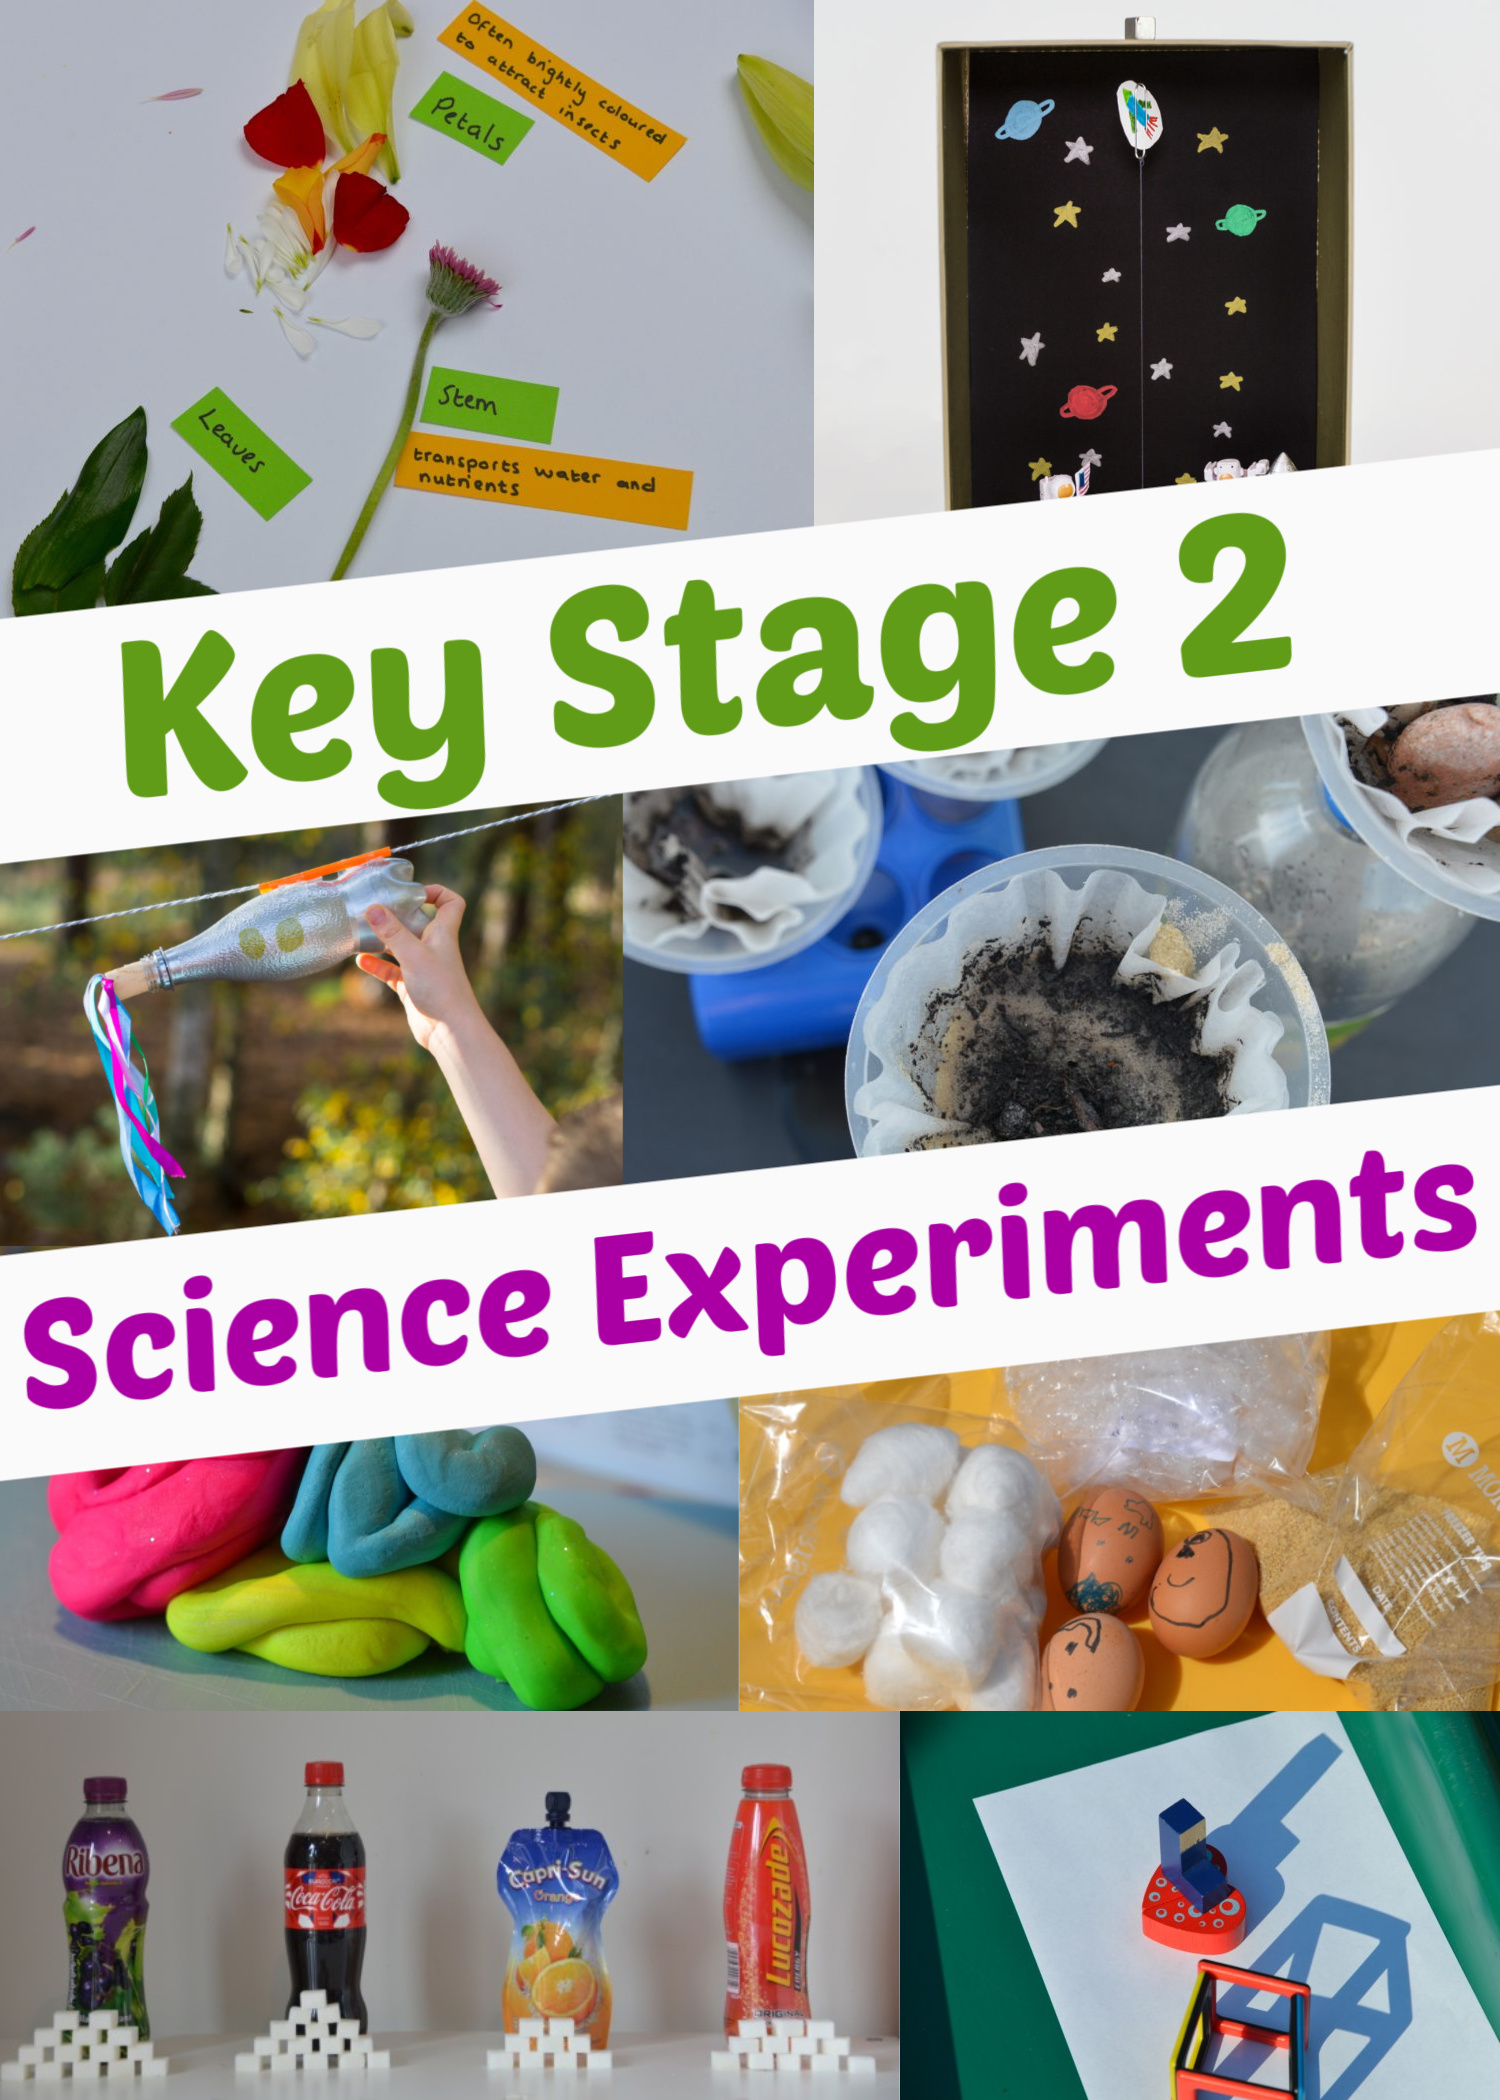 Easy science experiments for Key Stage 2! #KeyStage2Science #scienceforkids